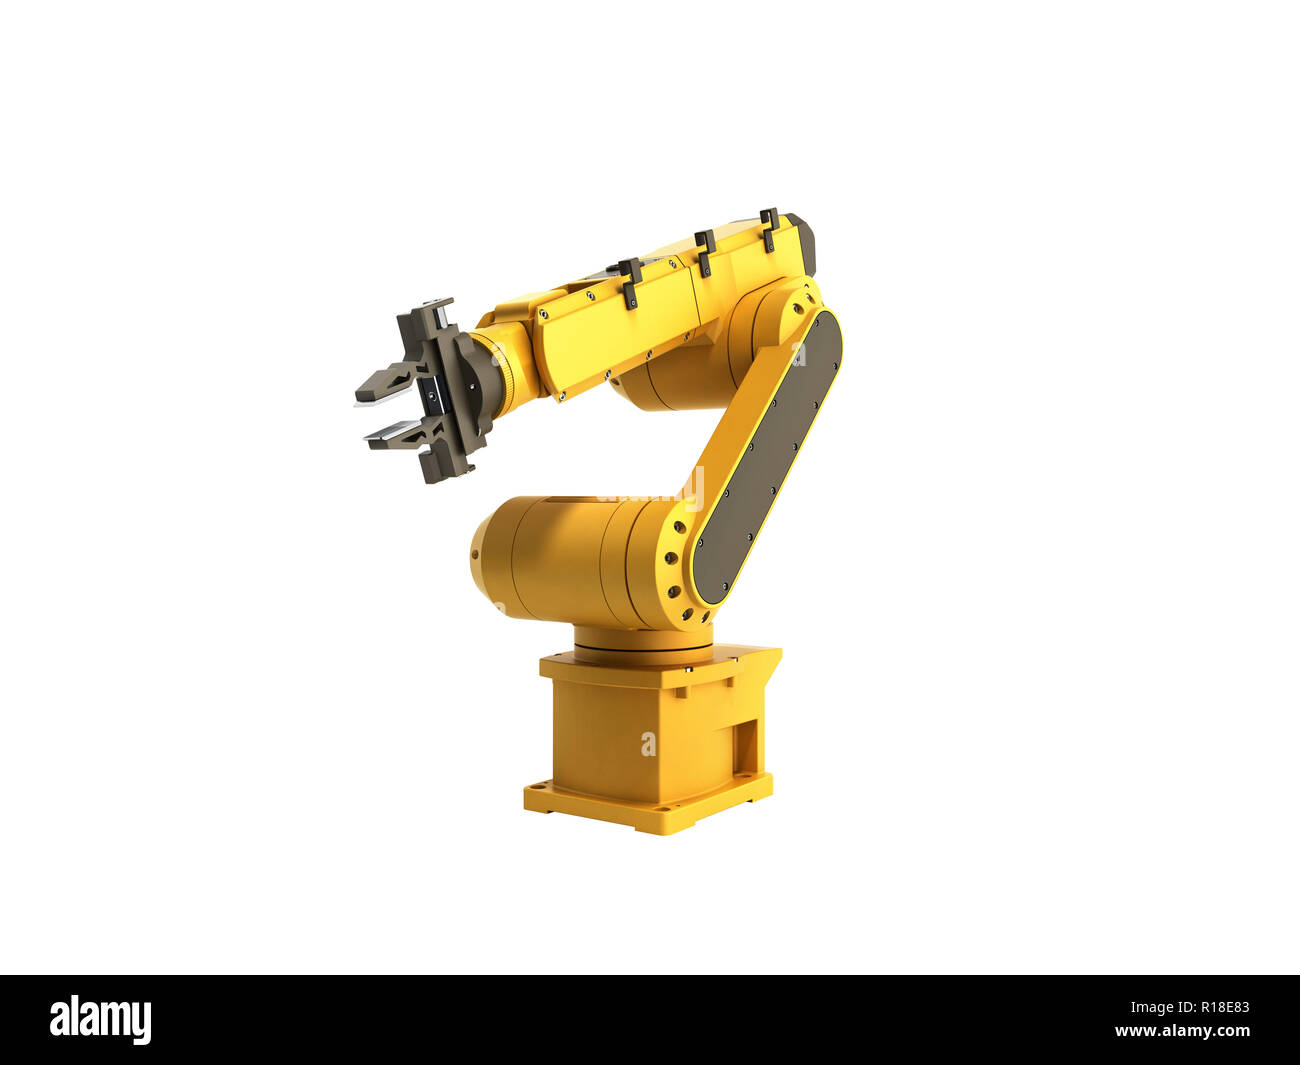 Industrial robot on white background no shadow 3D rendering - Stock Image